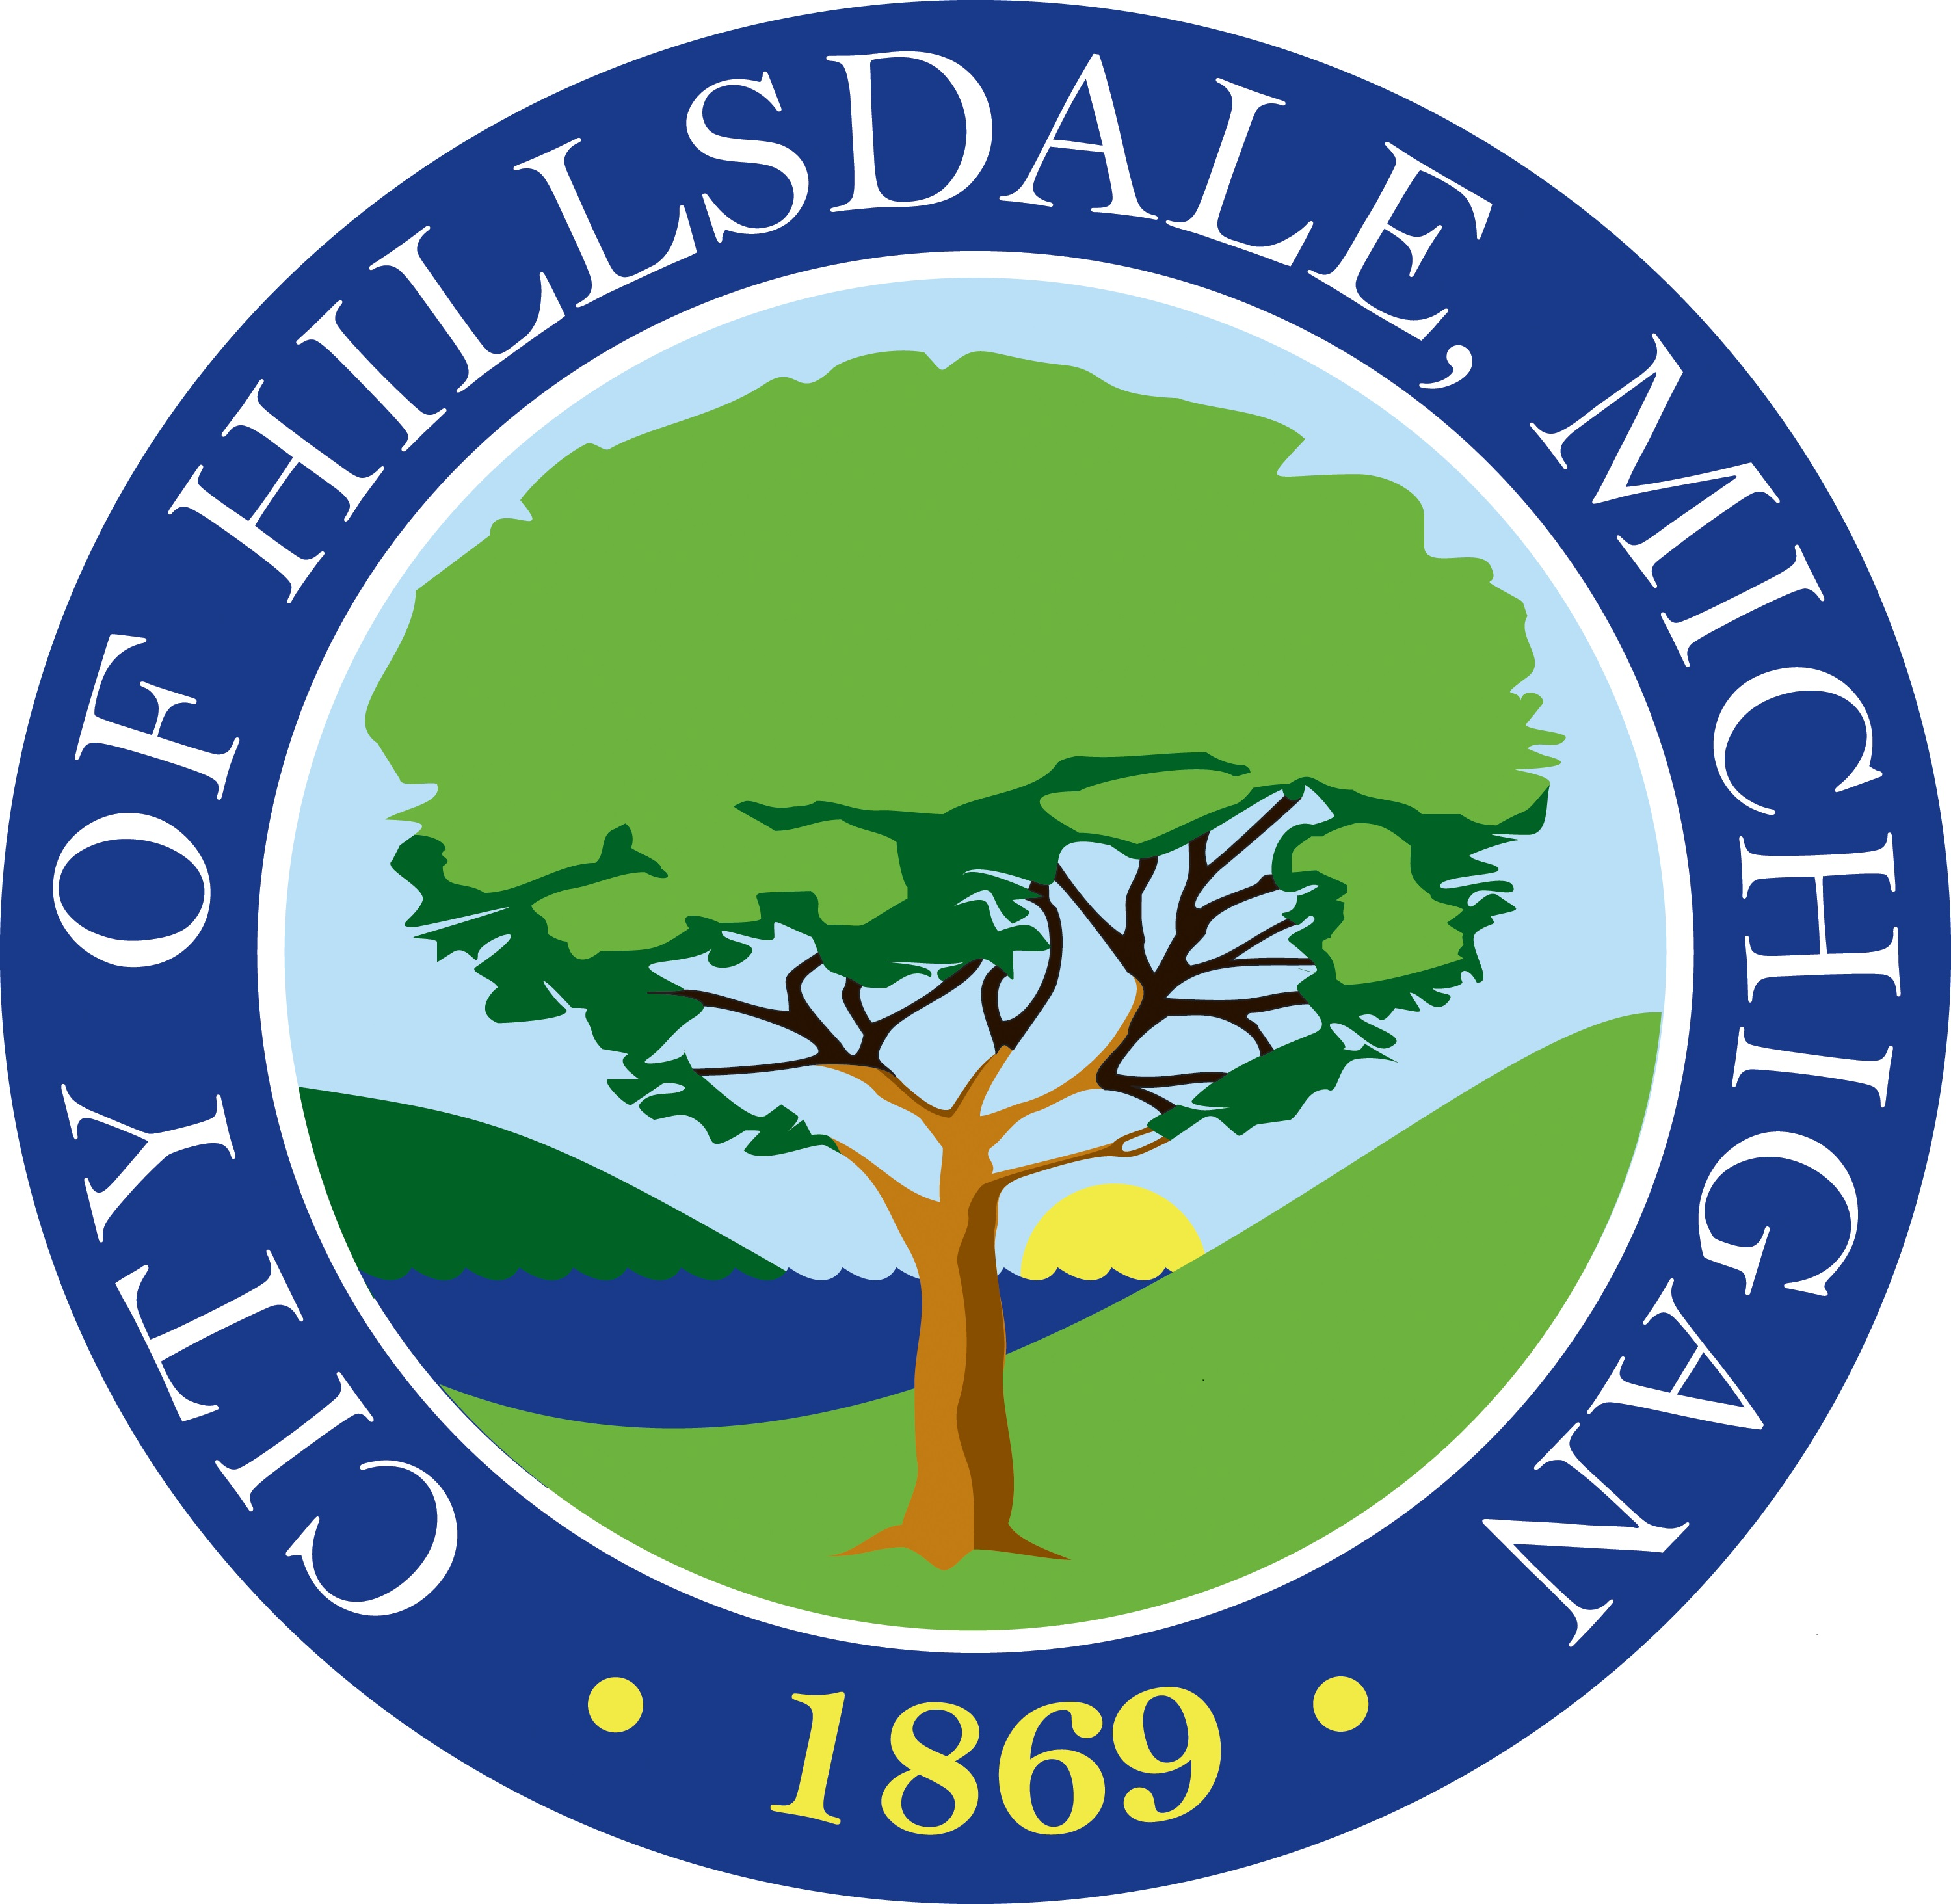 Organization logo of City of Hillsdale